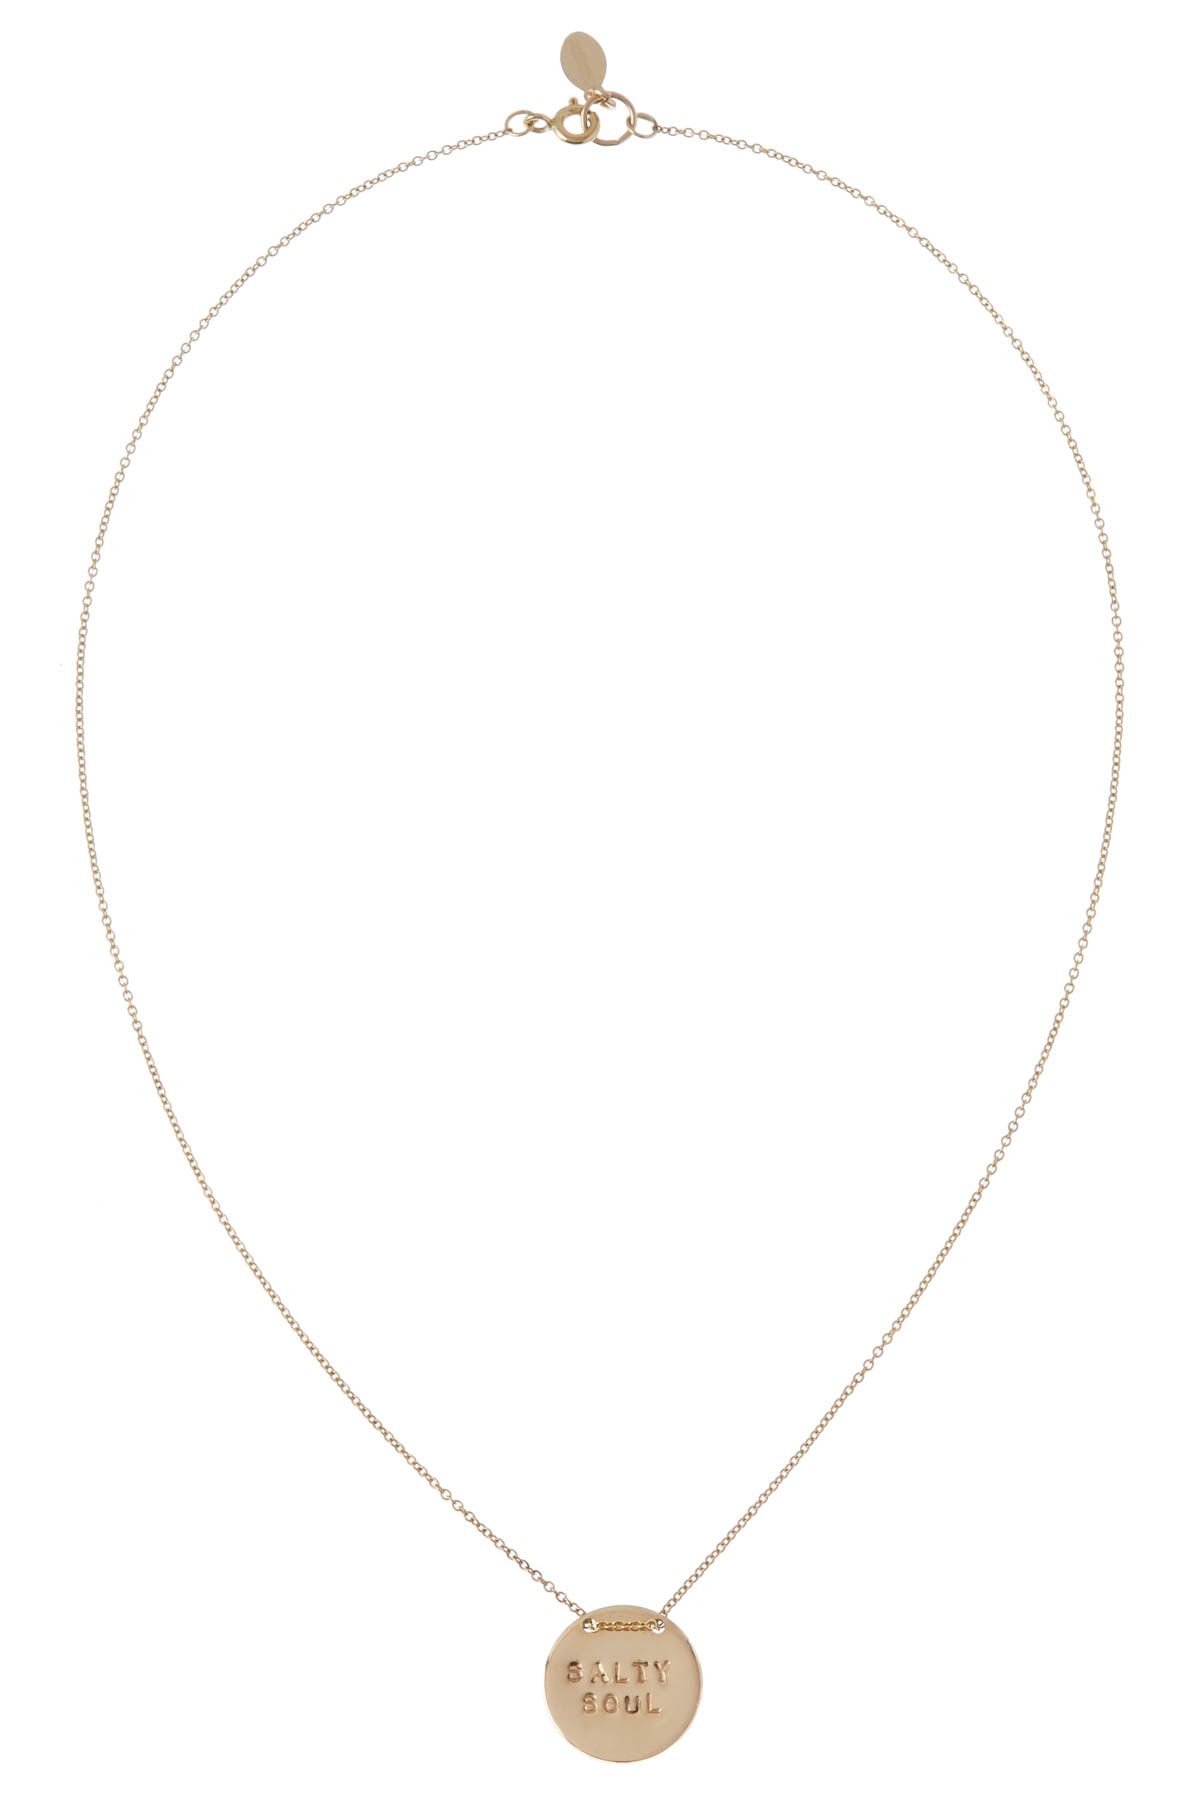 Salty Soul Stamped Disc Necklace - Gold 1